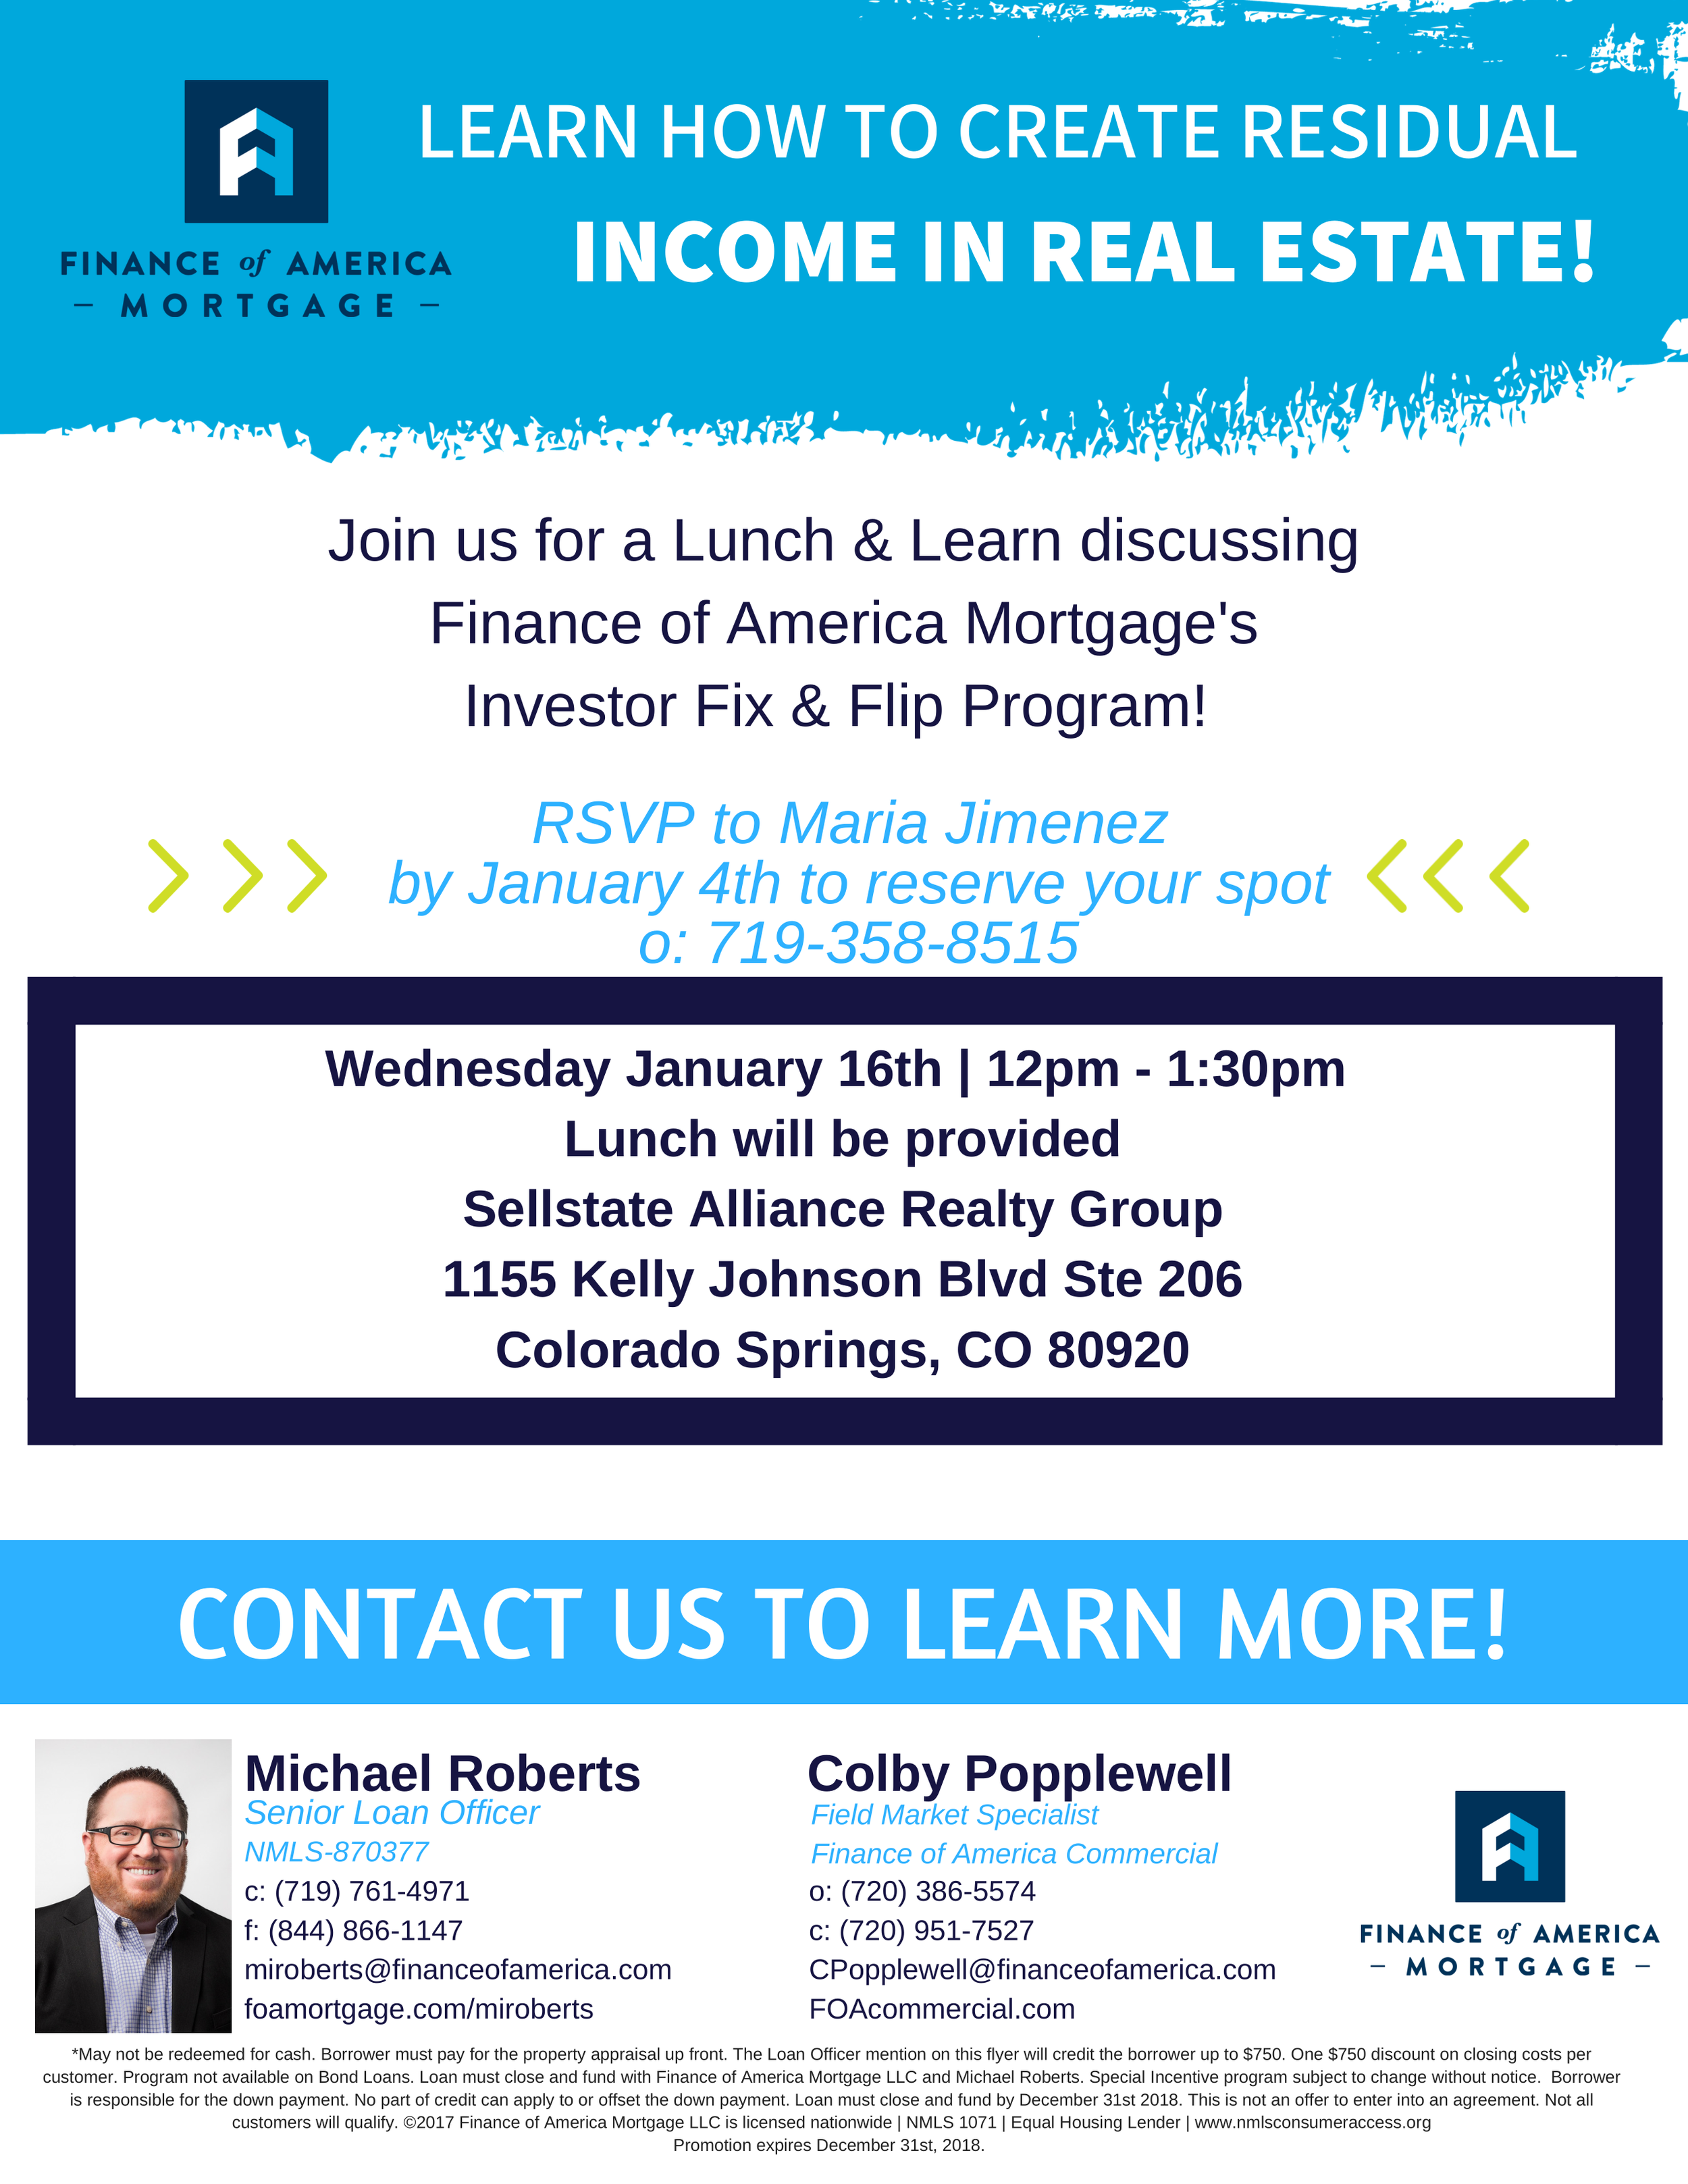 Sellstate - Fix n Flip - Lunch and Learn Invite.png